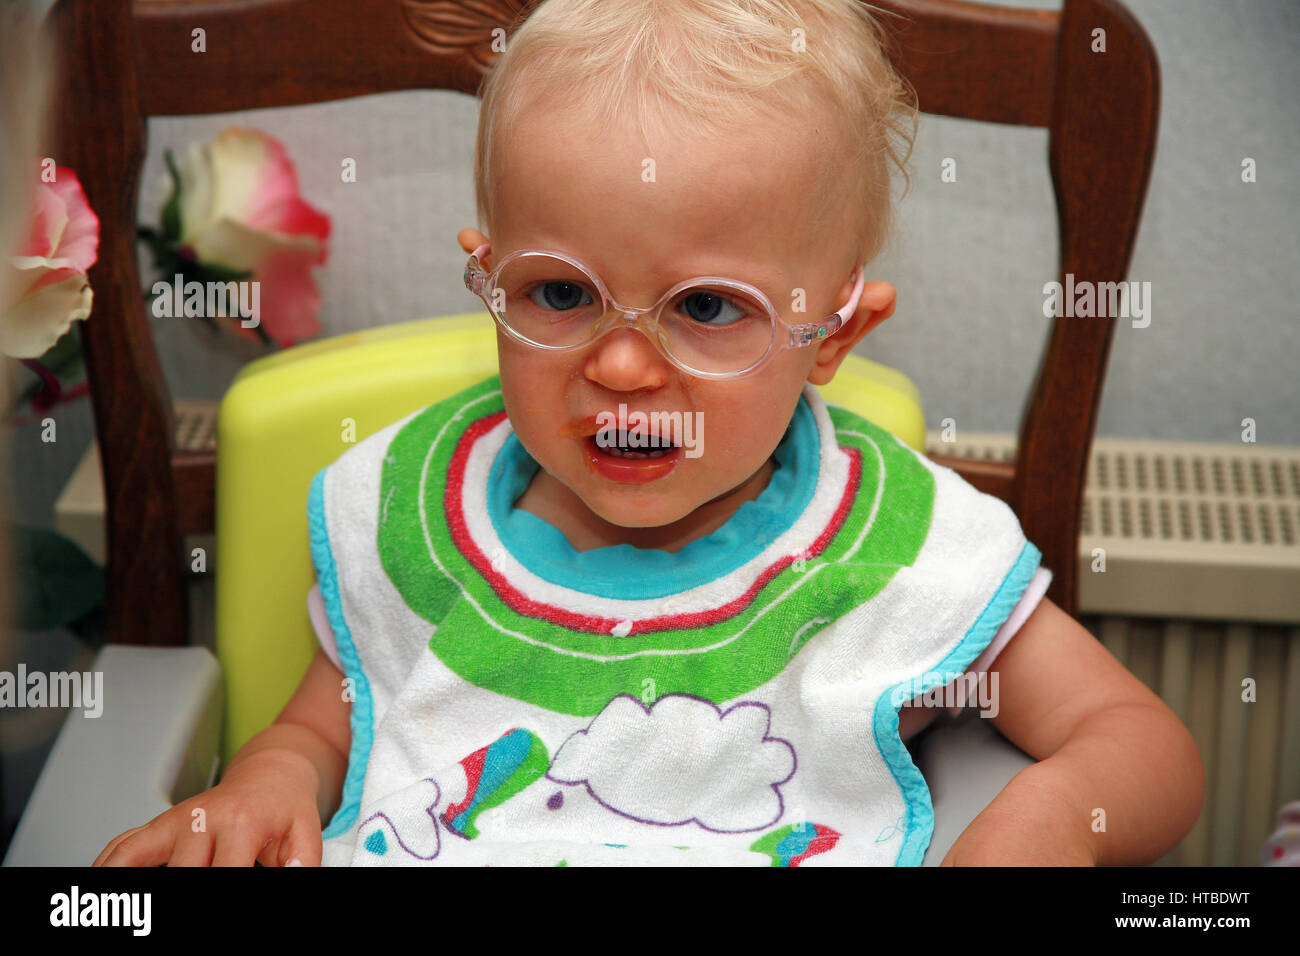 toddler girl with glasses, crying - Stock Image